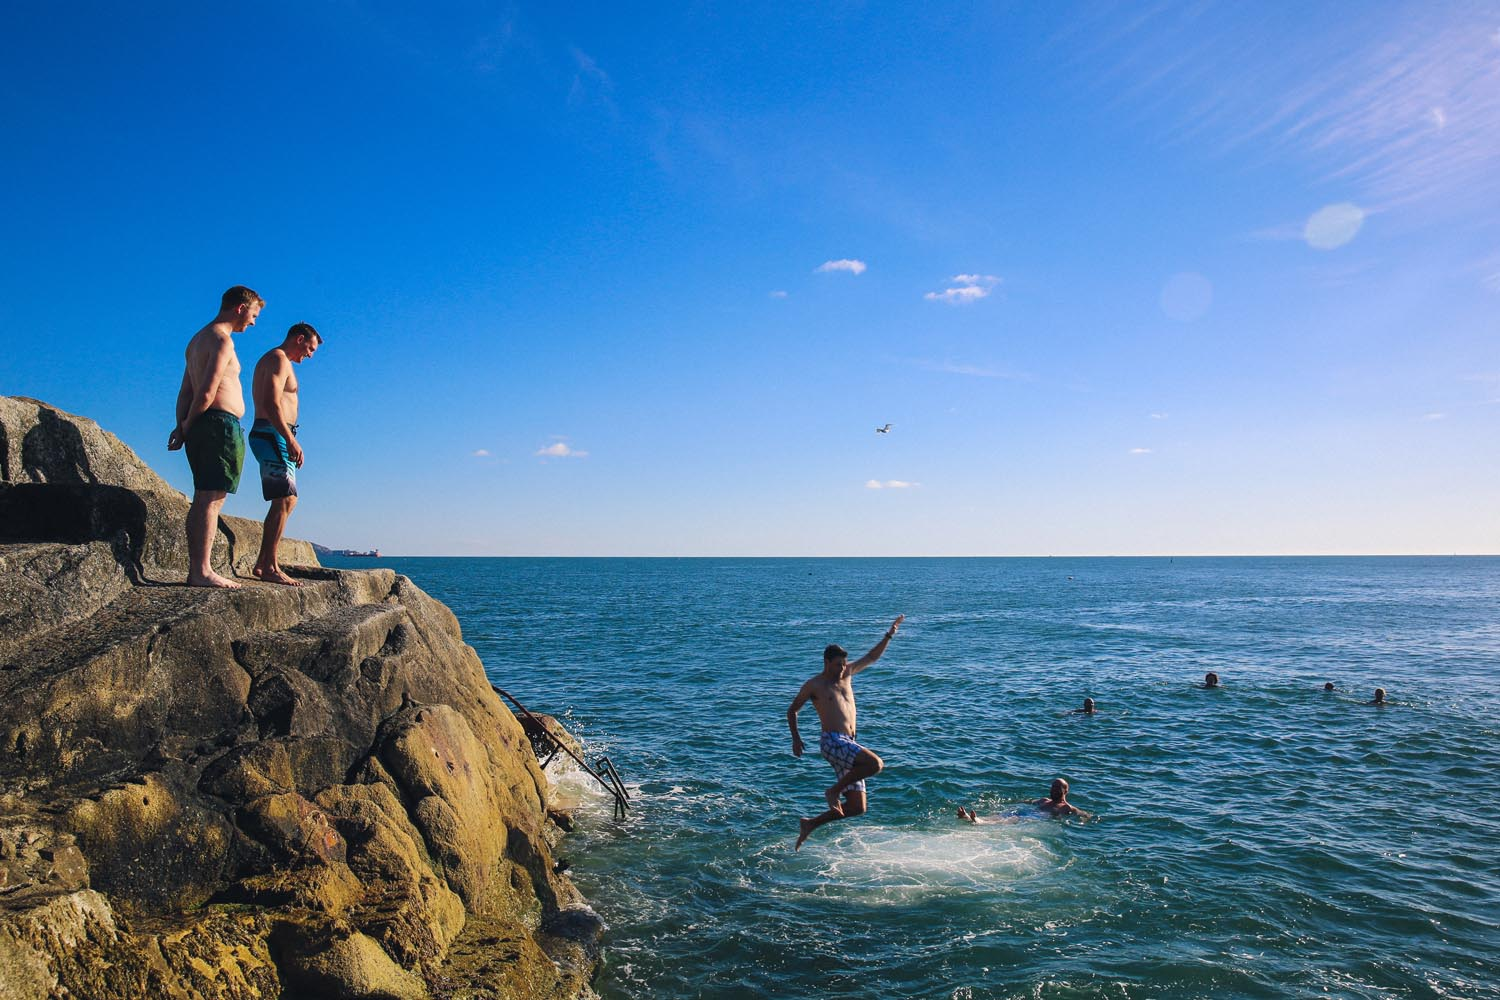 Jumping into the water at The Forty Foot